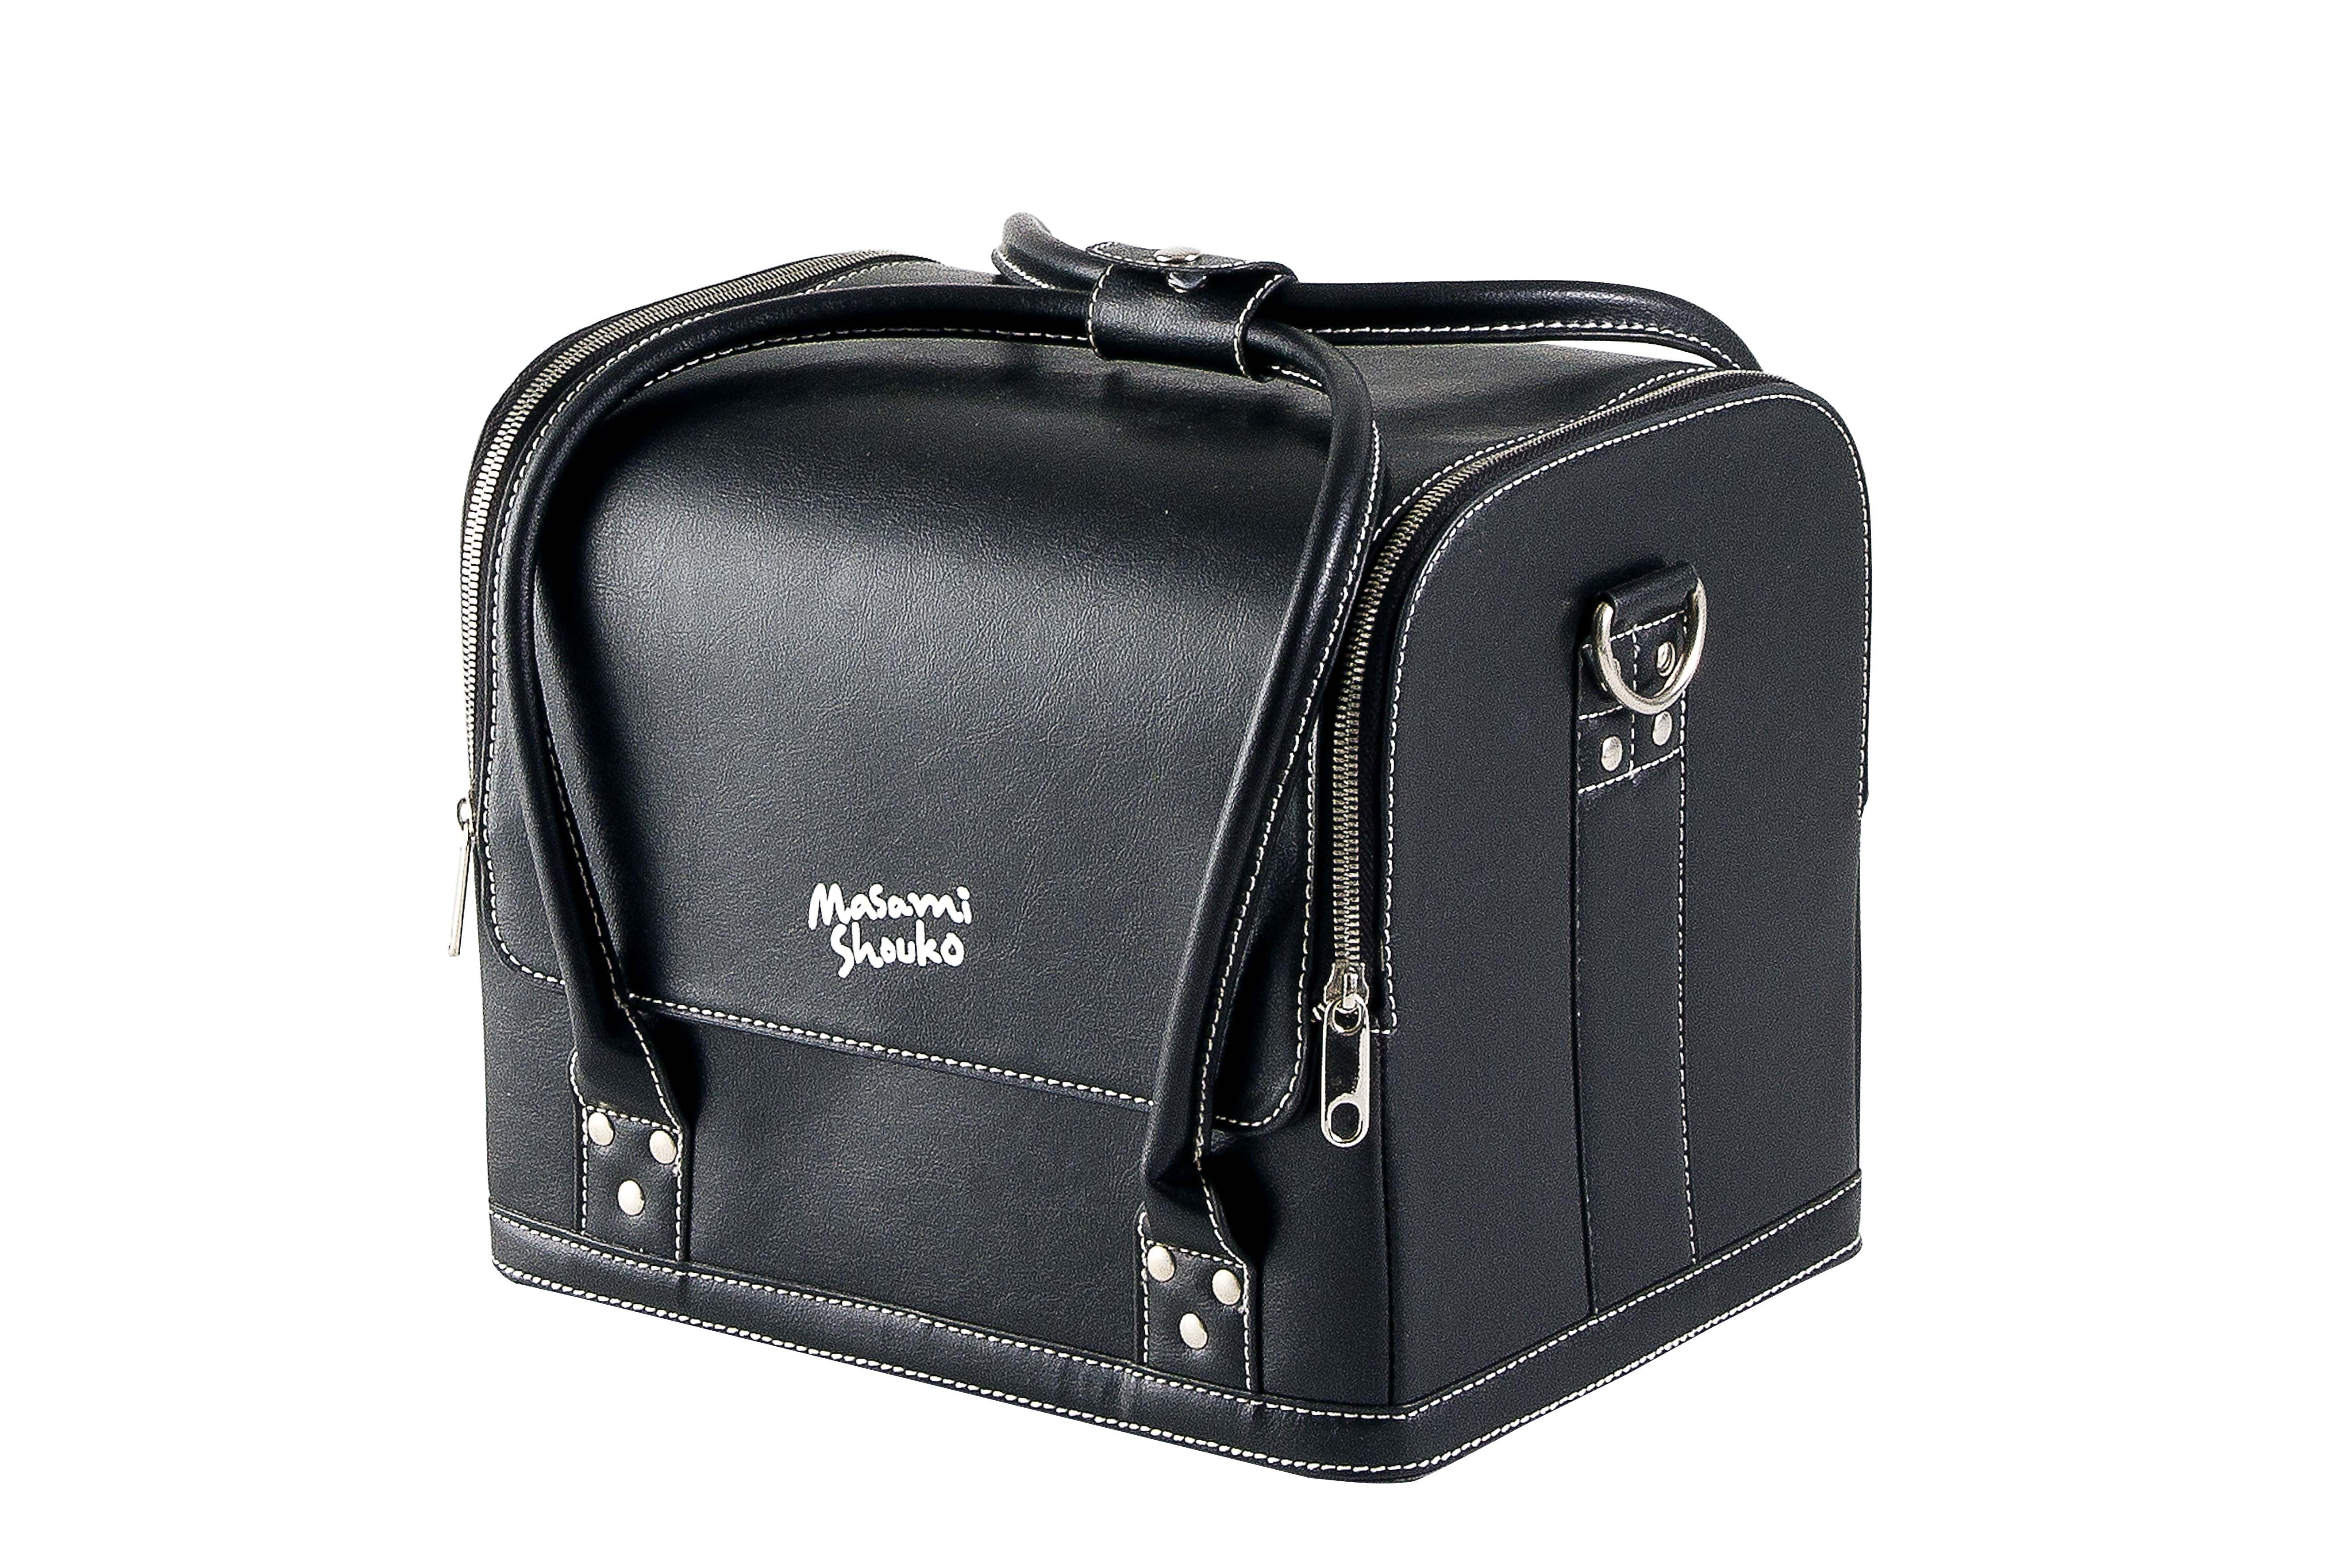 masami shouko carry on makeup case